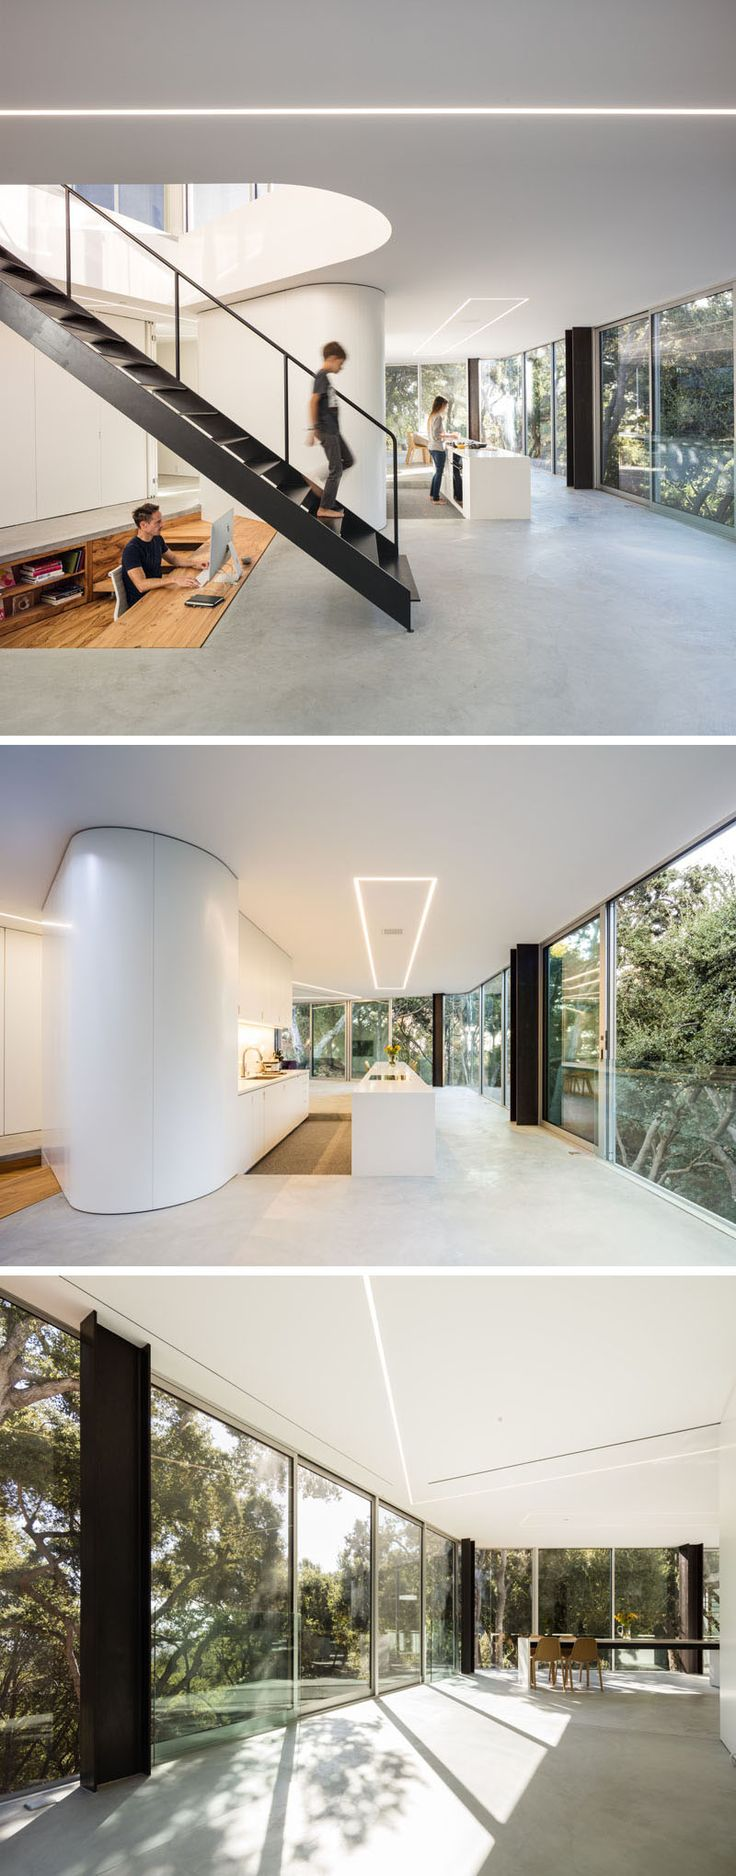 2613 best house images on Pinterest | Architecture plan ...